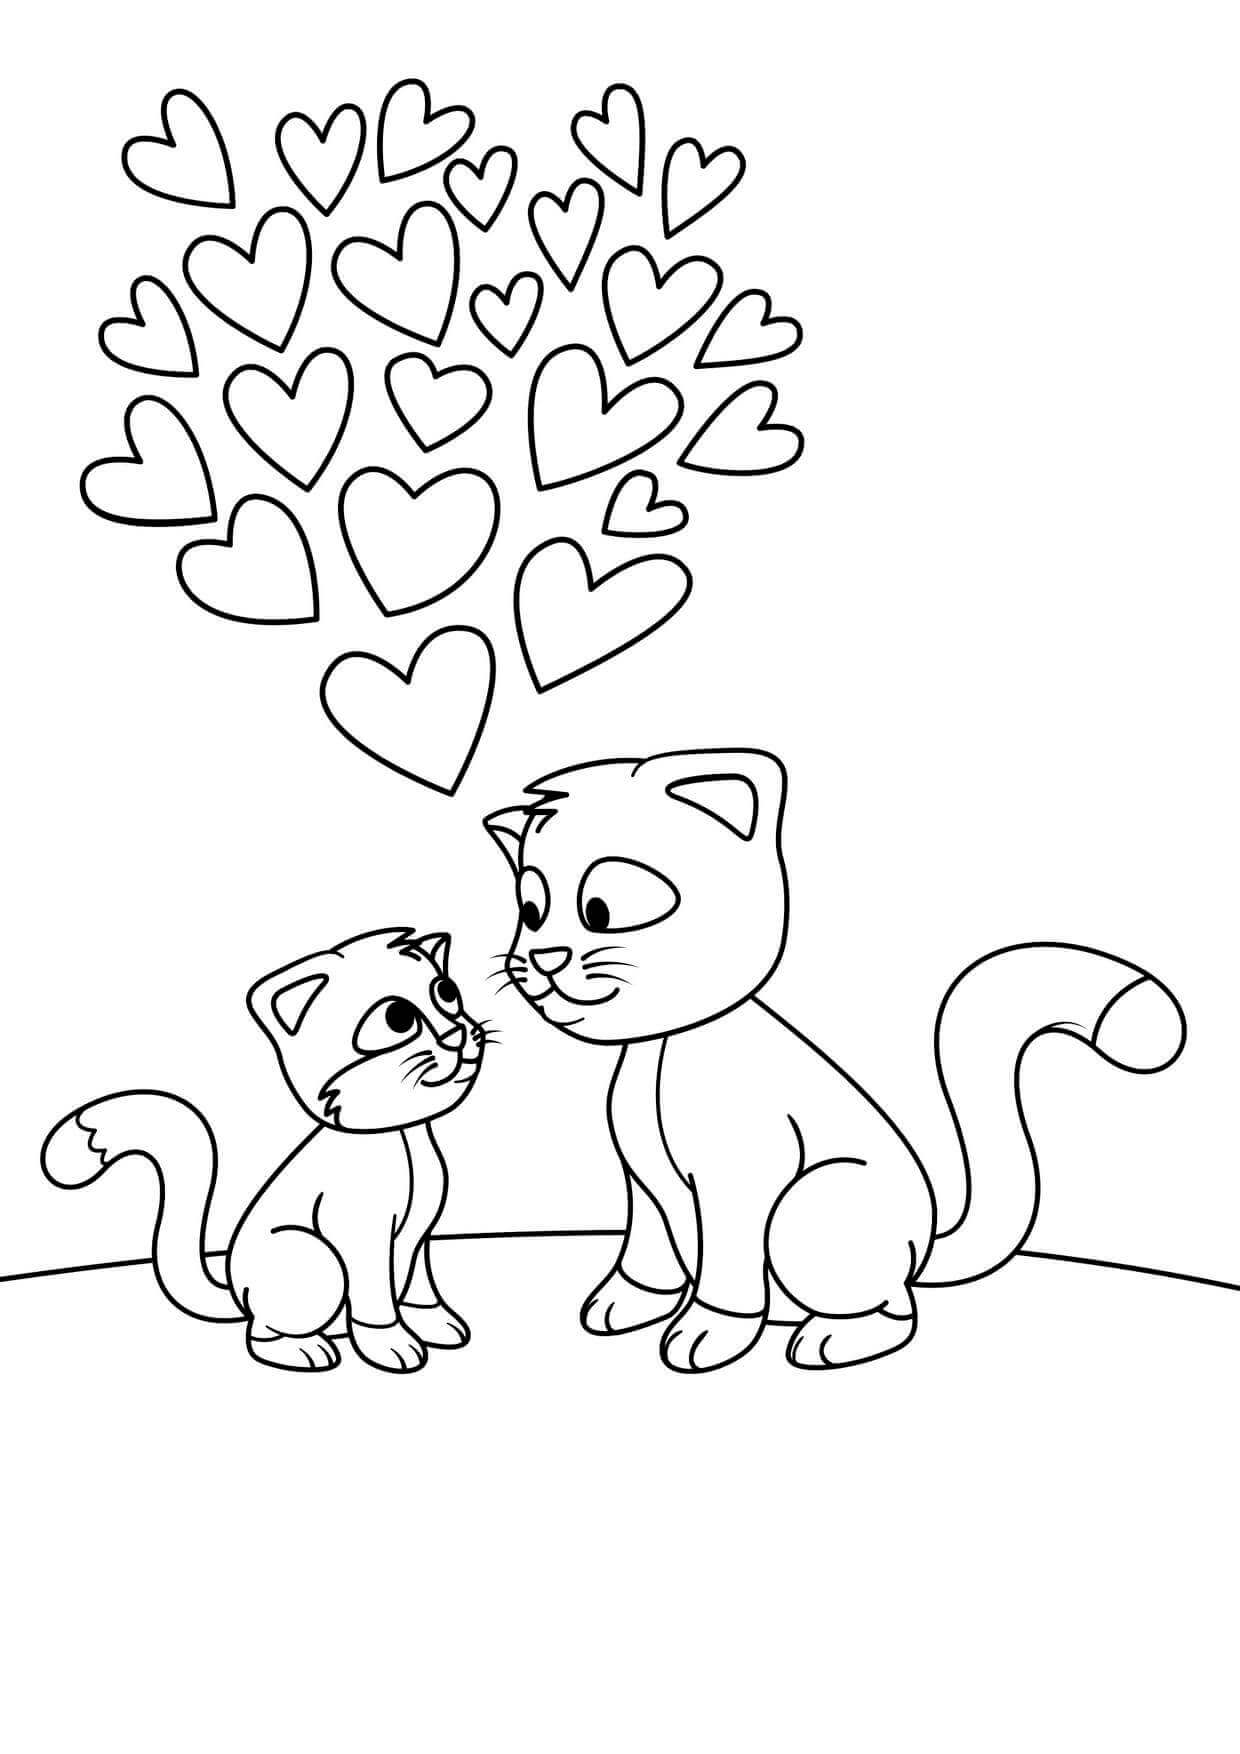 girls colouring pictures outline of girl coloring pages png image transparent png pictures colouring girls